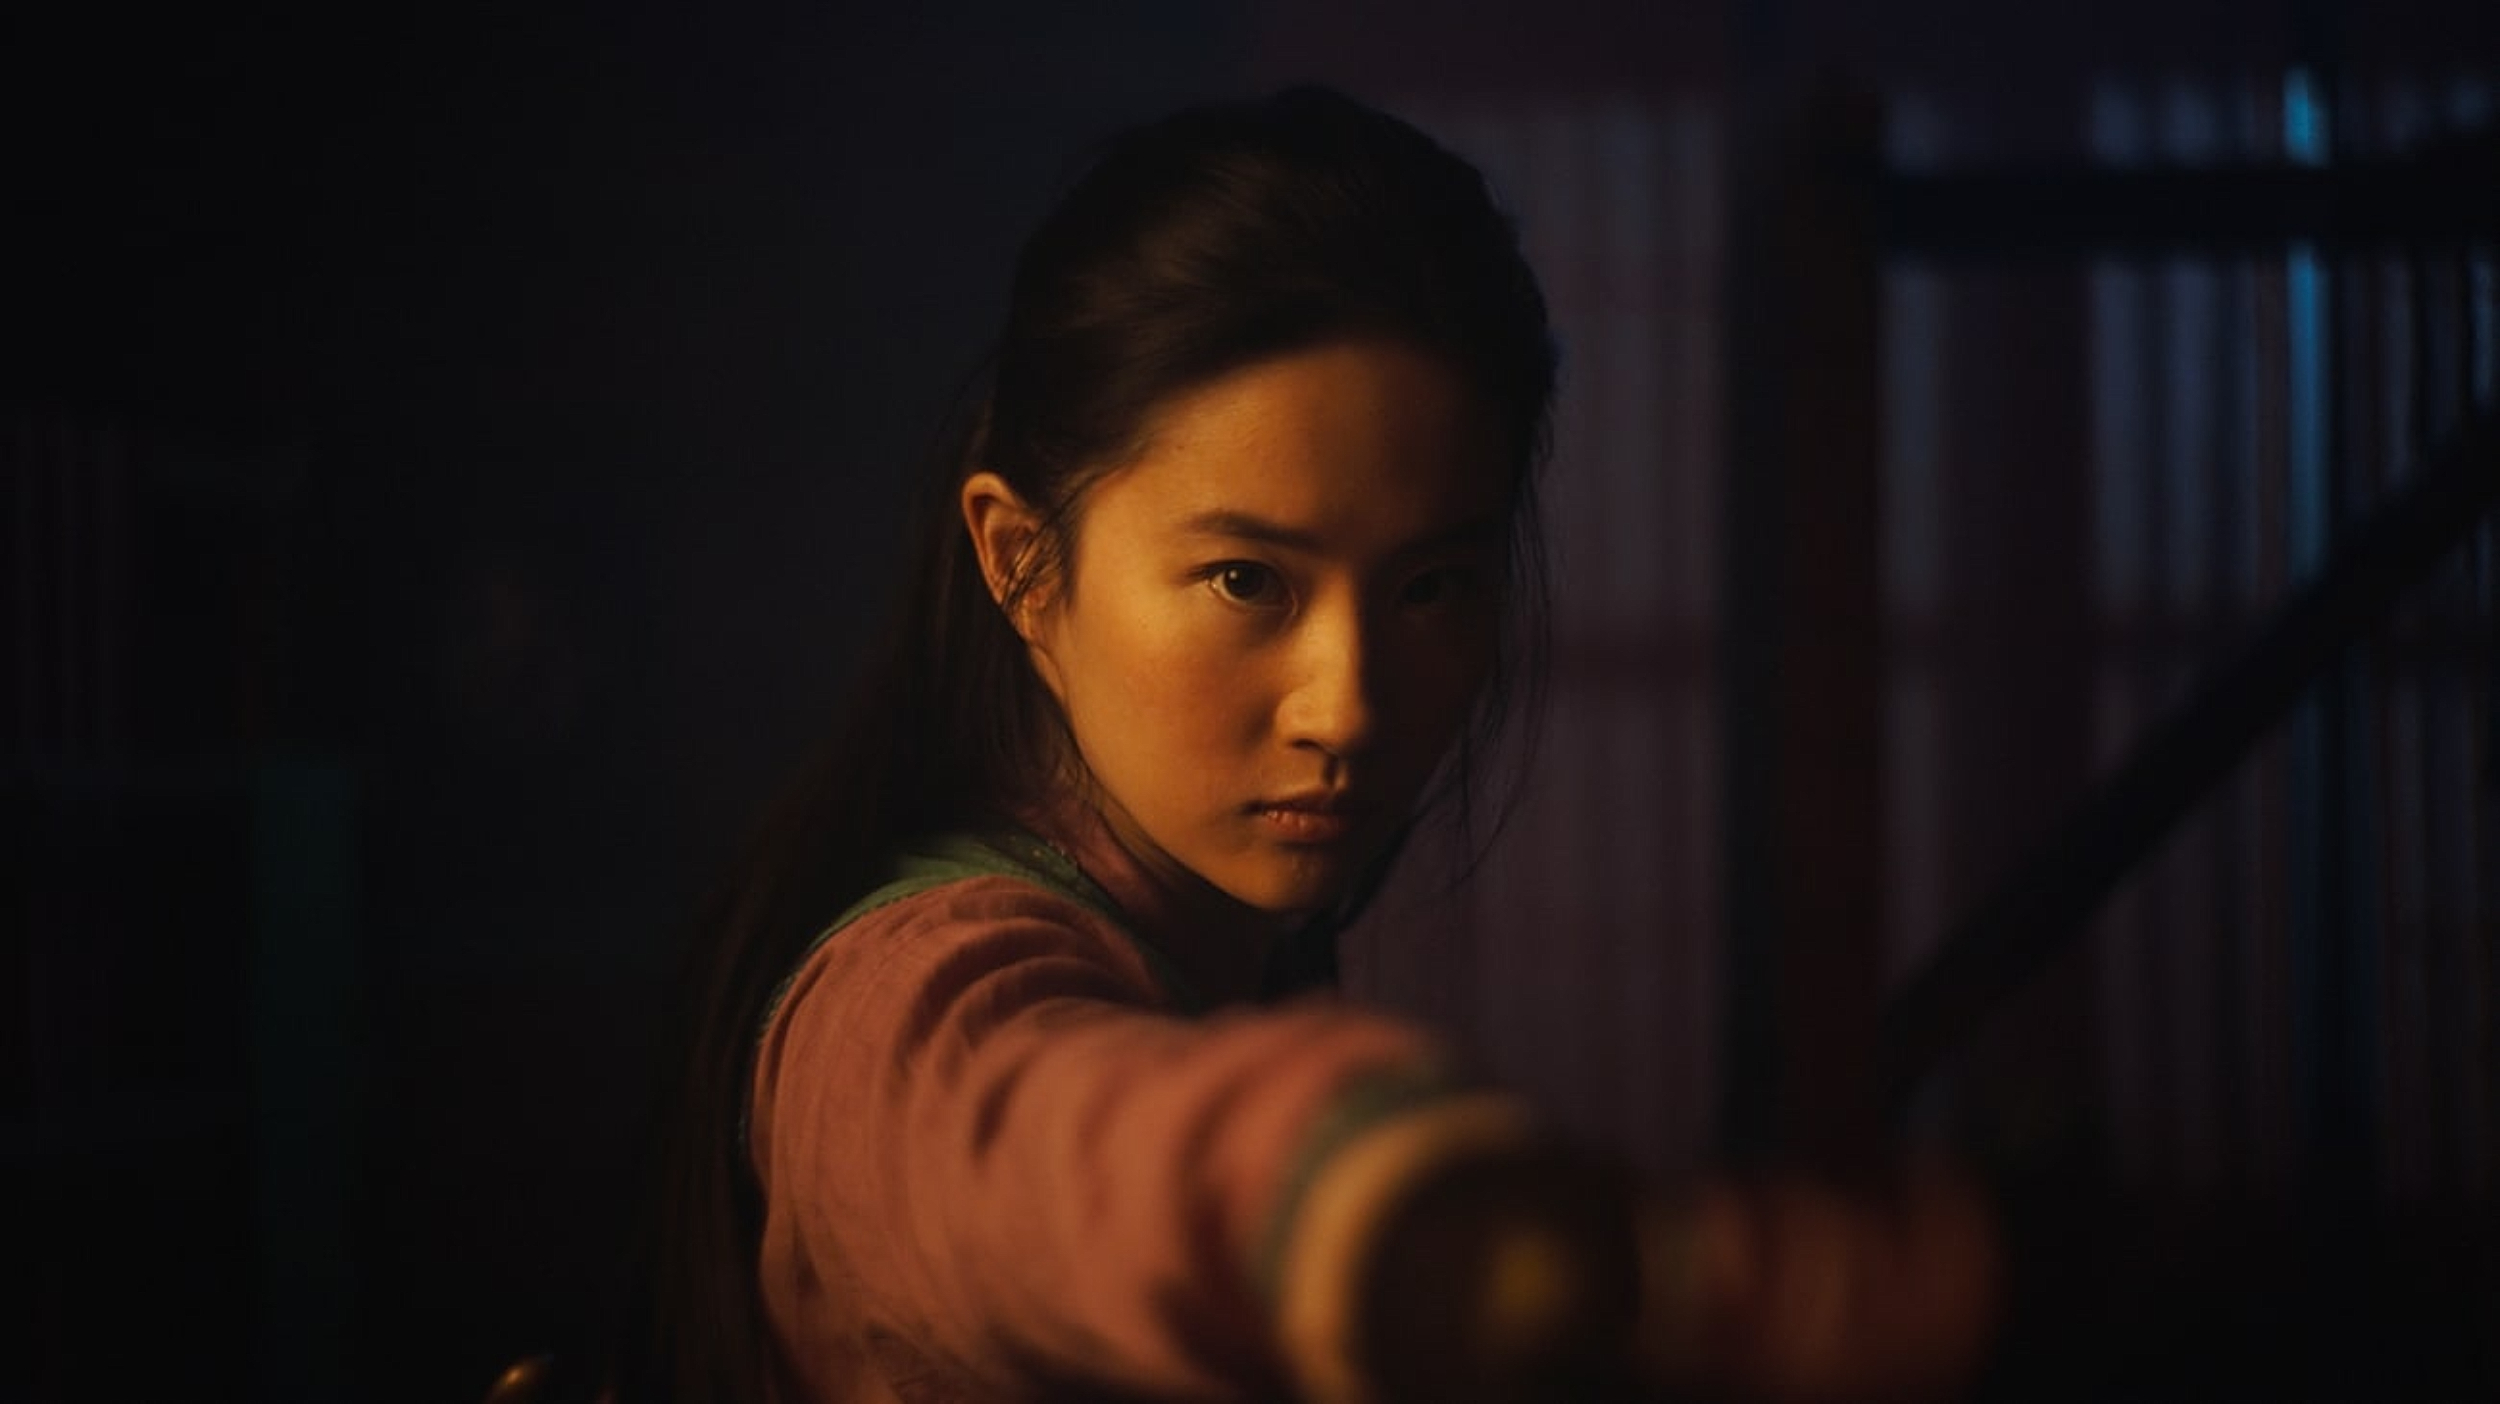 Liu Yifei as Mulan, a Chinese young woman, who wears red and has long, dark hair.